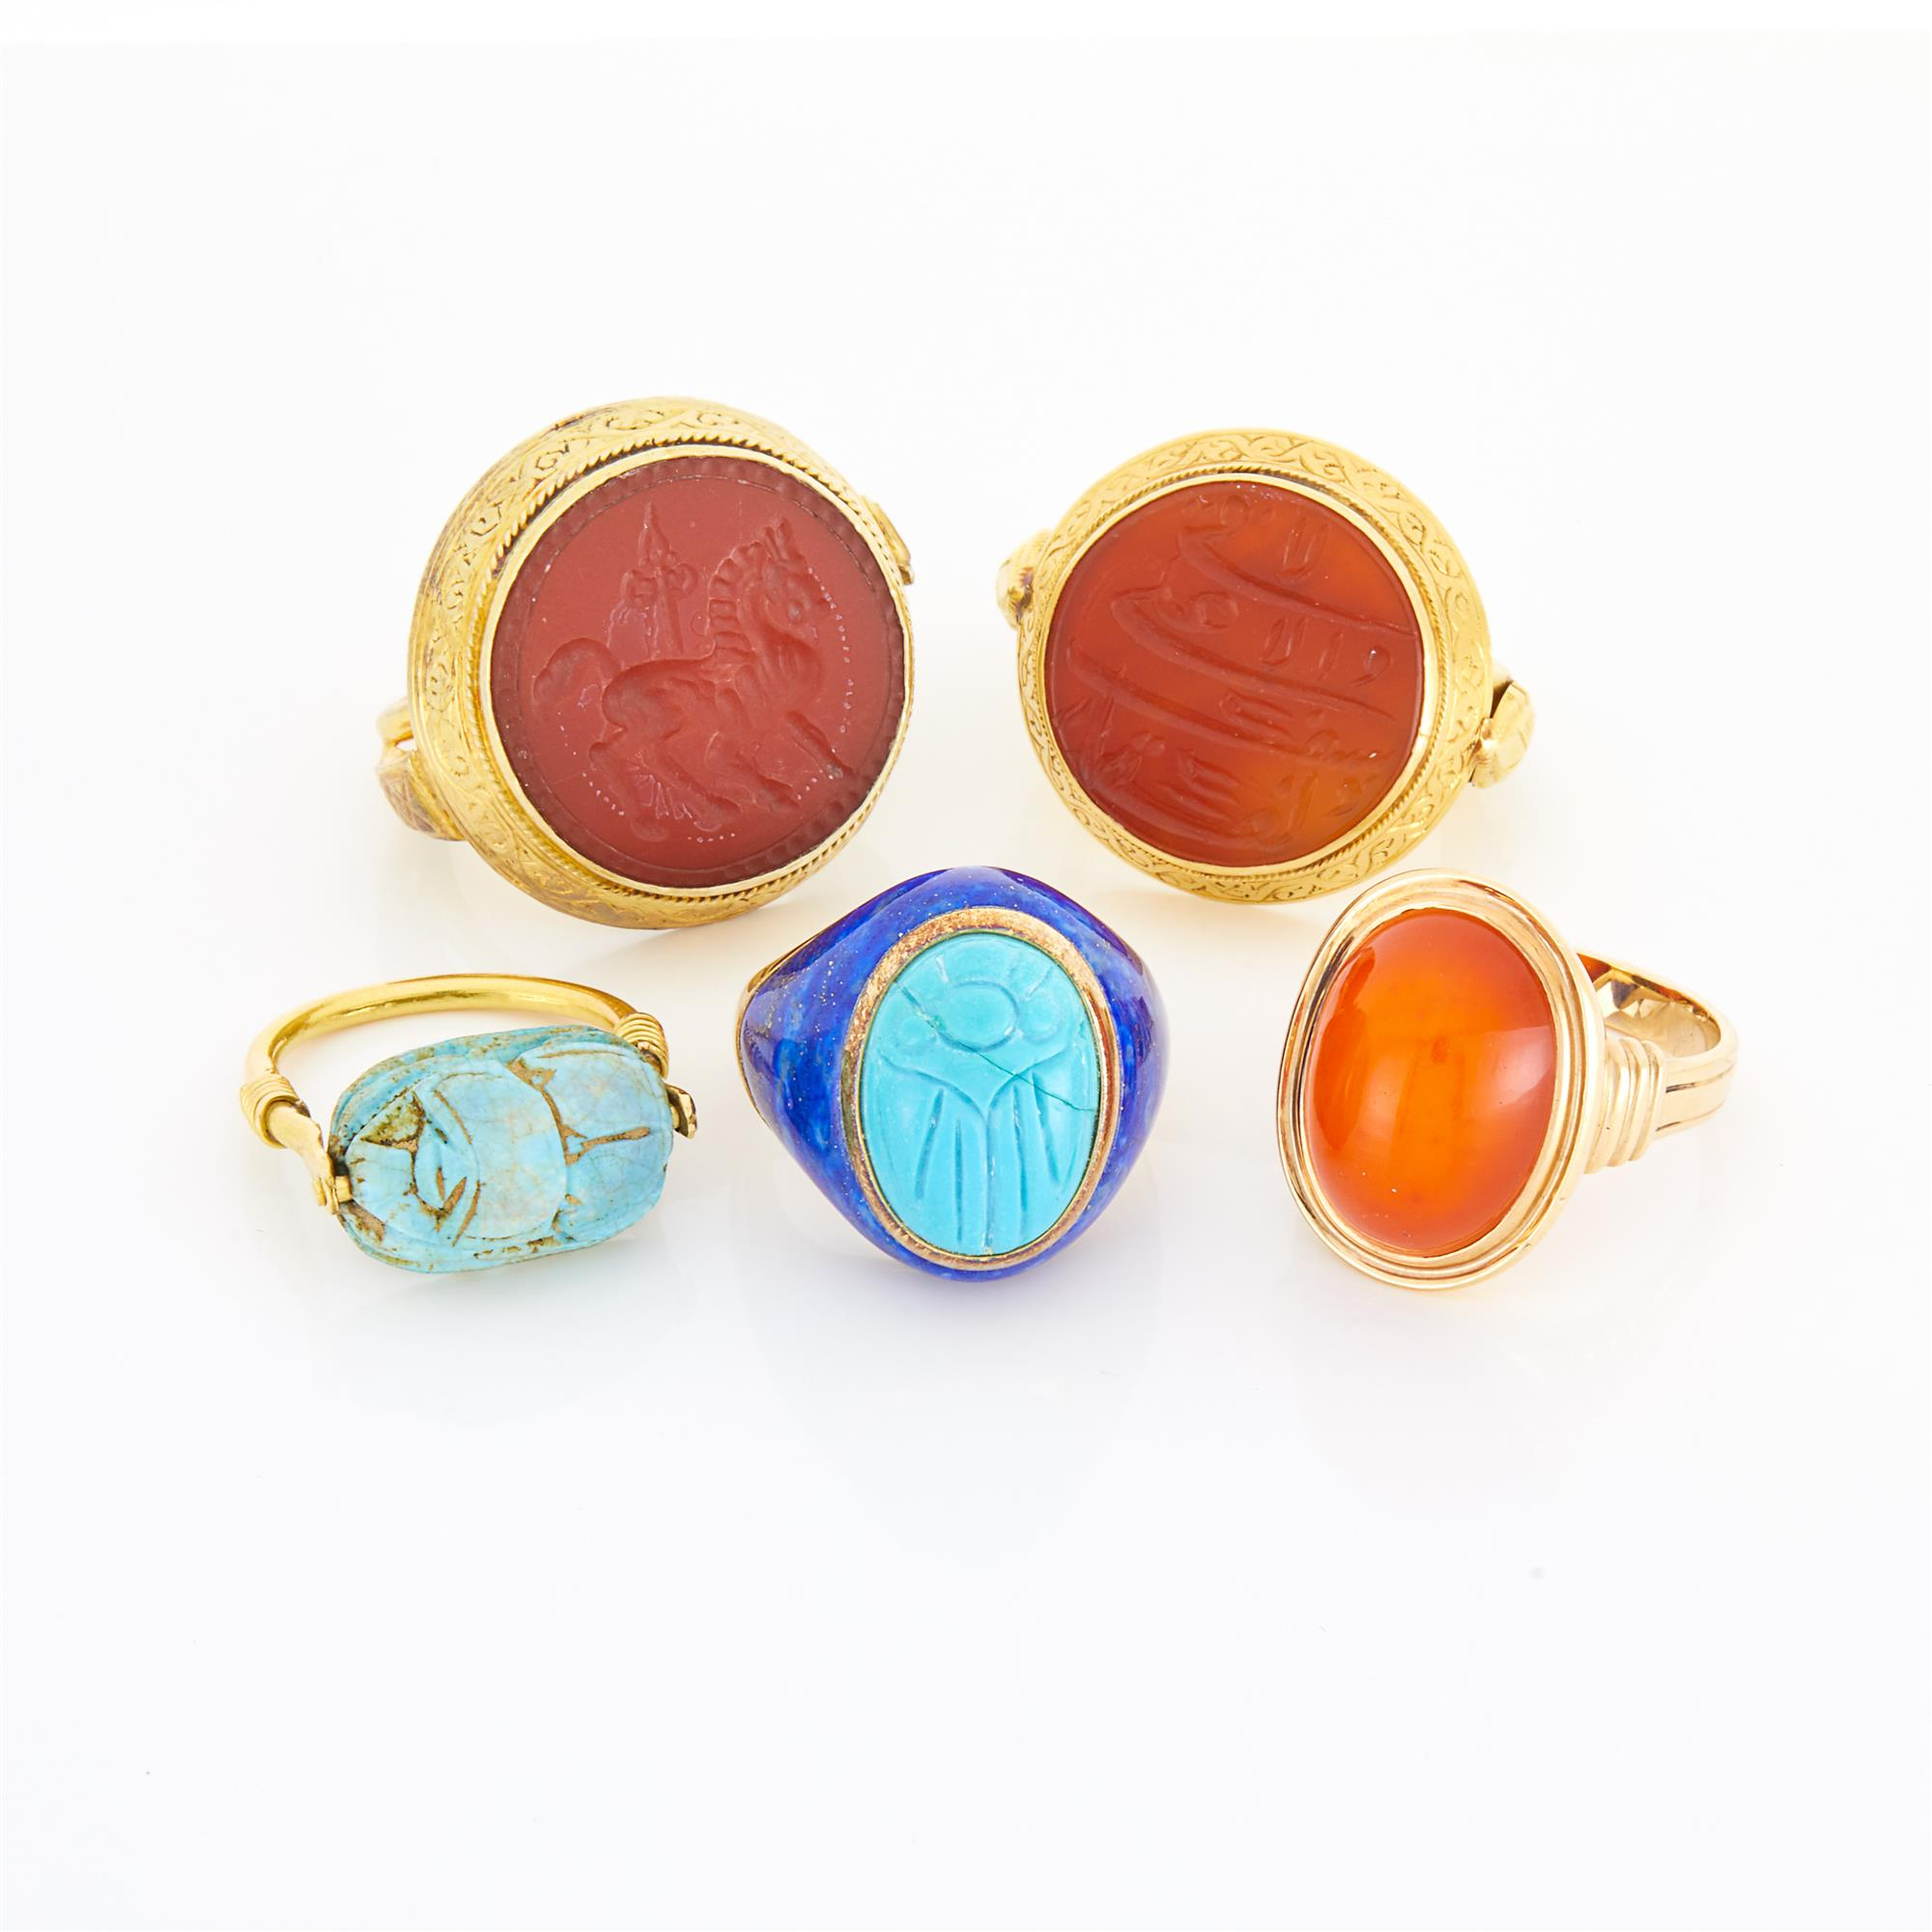 Lot image - Five Gold, Low Karat Gold, Sterling Silver and Hardstone Rings